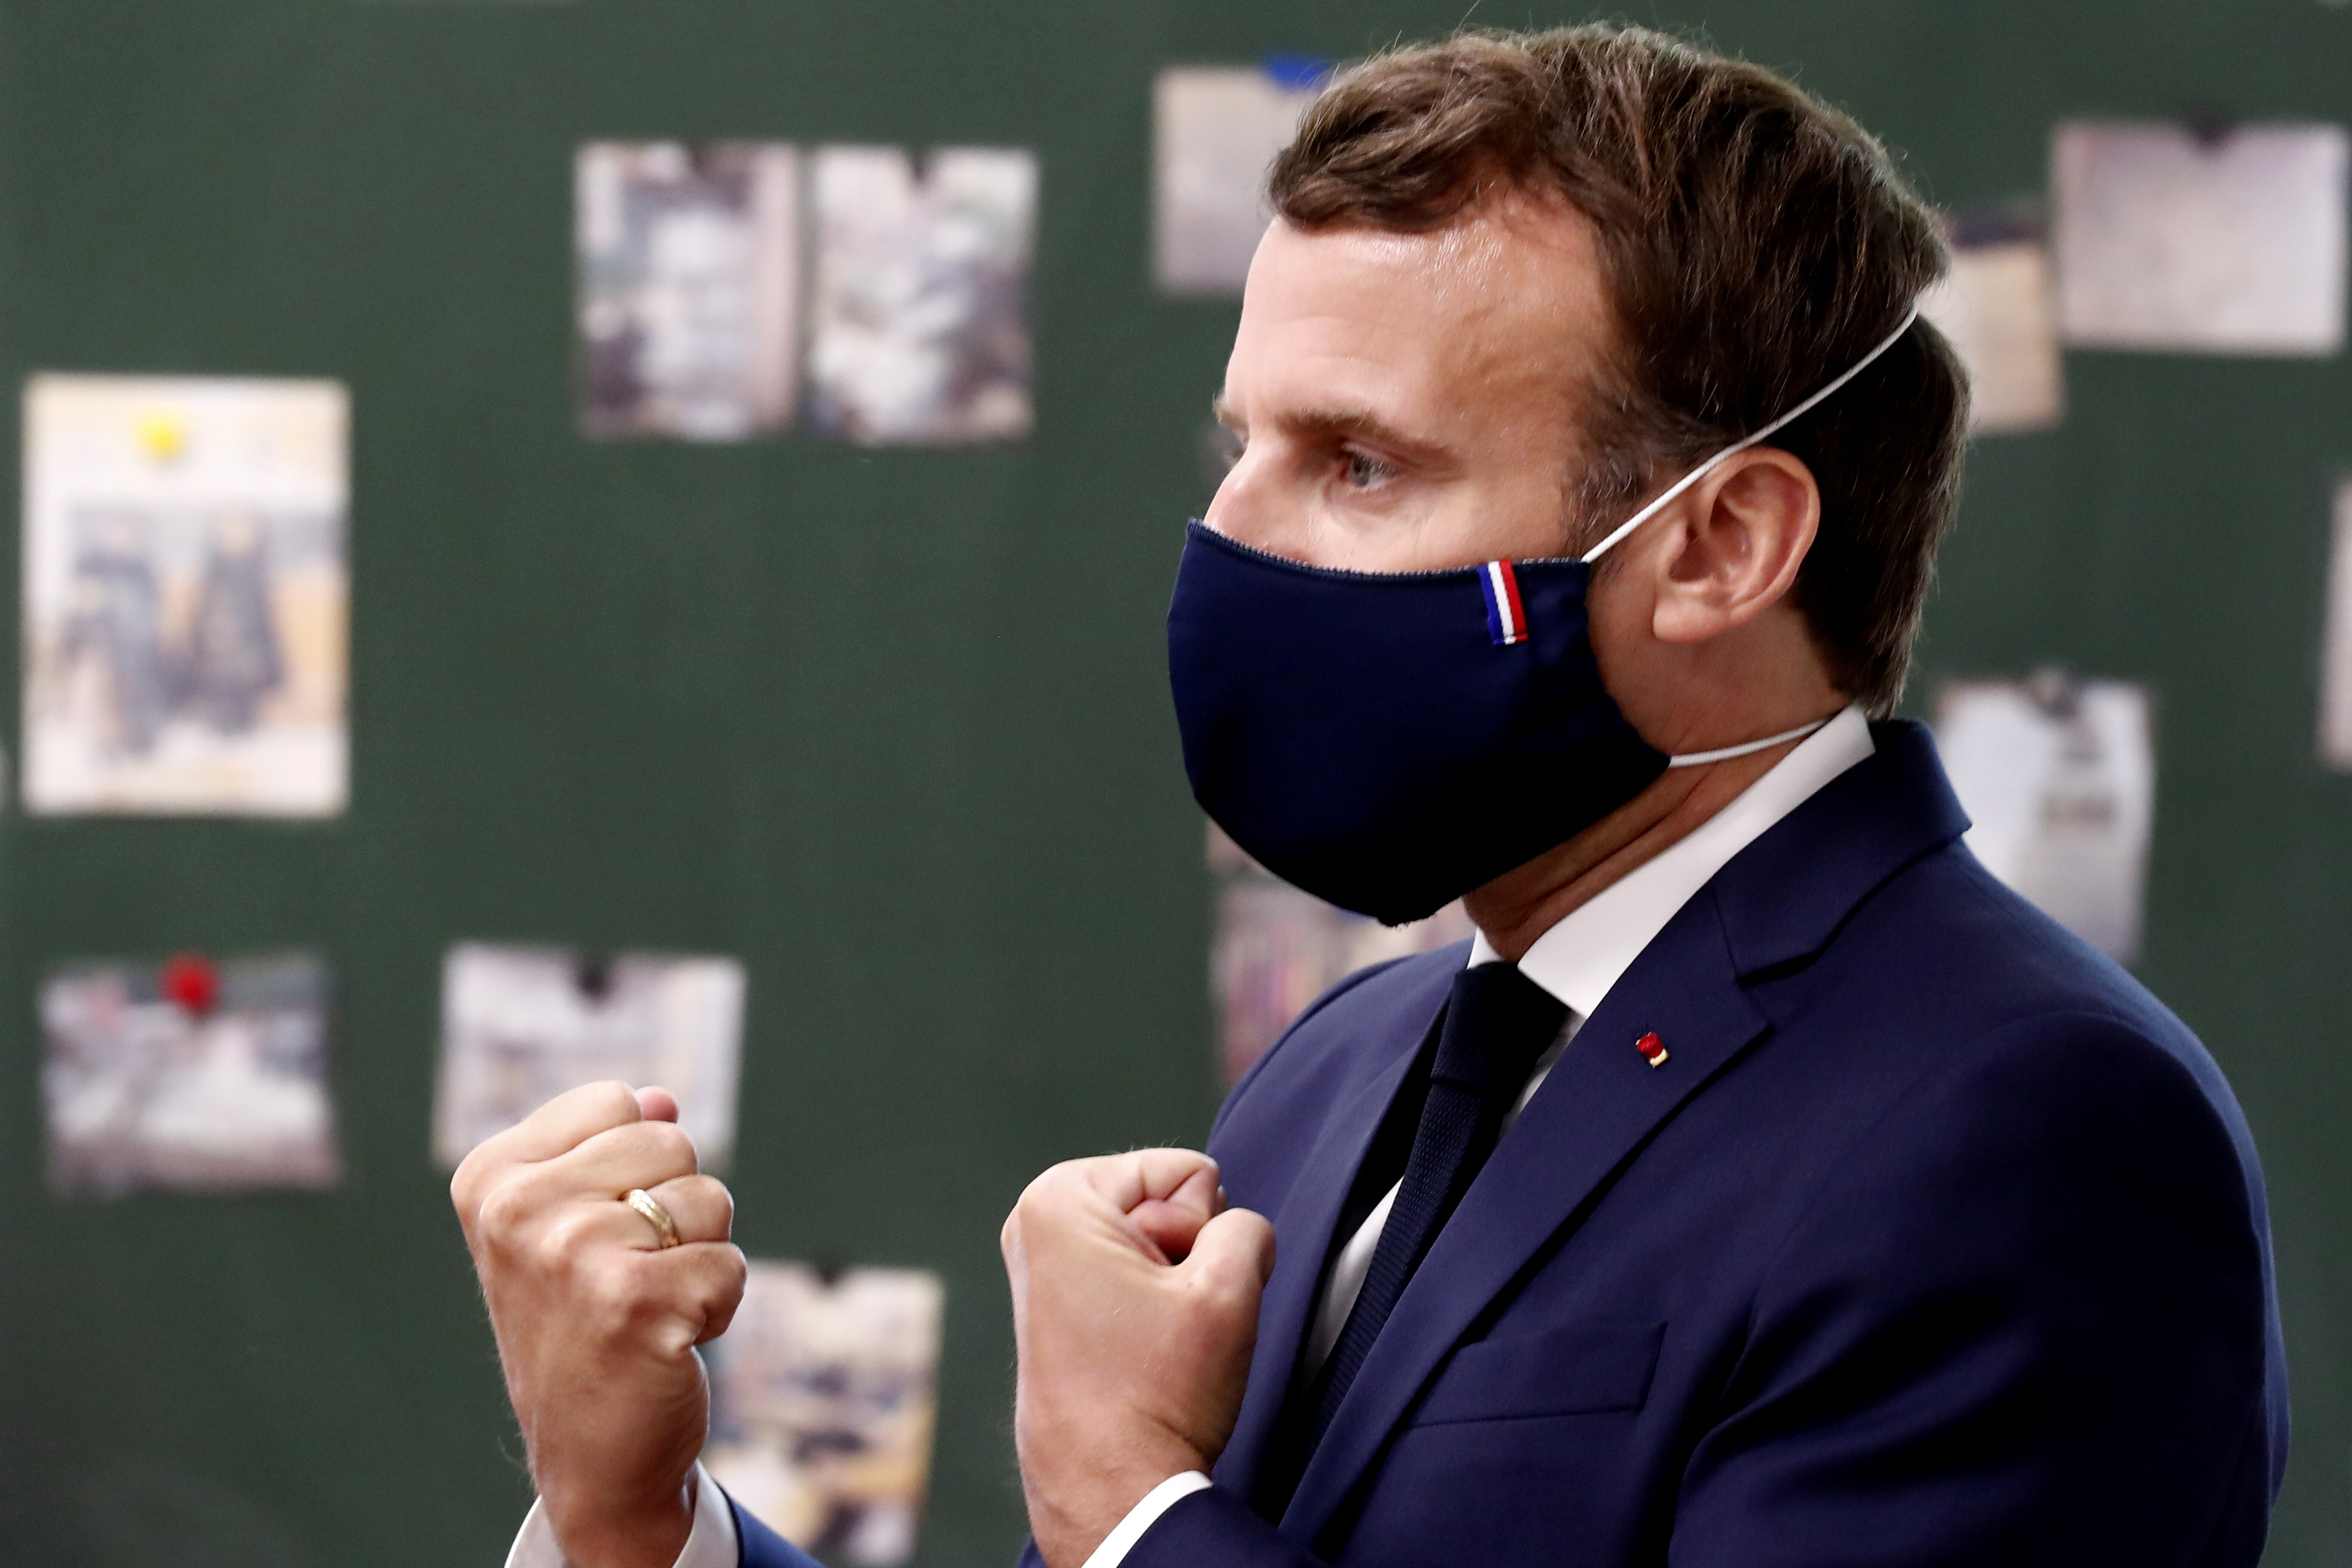 Stylish And Made In France Face Mask President Macron Wore To Accessorise His Suit Raises Profile Of Cloth Masks Everyone In France Will Soon Be Wearing In Public South China Morning